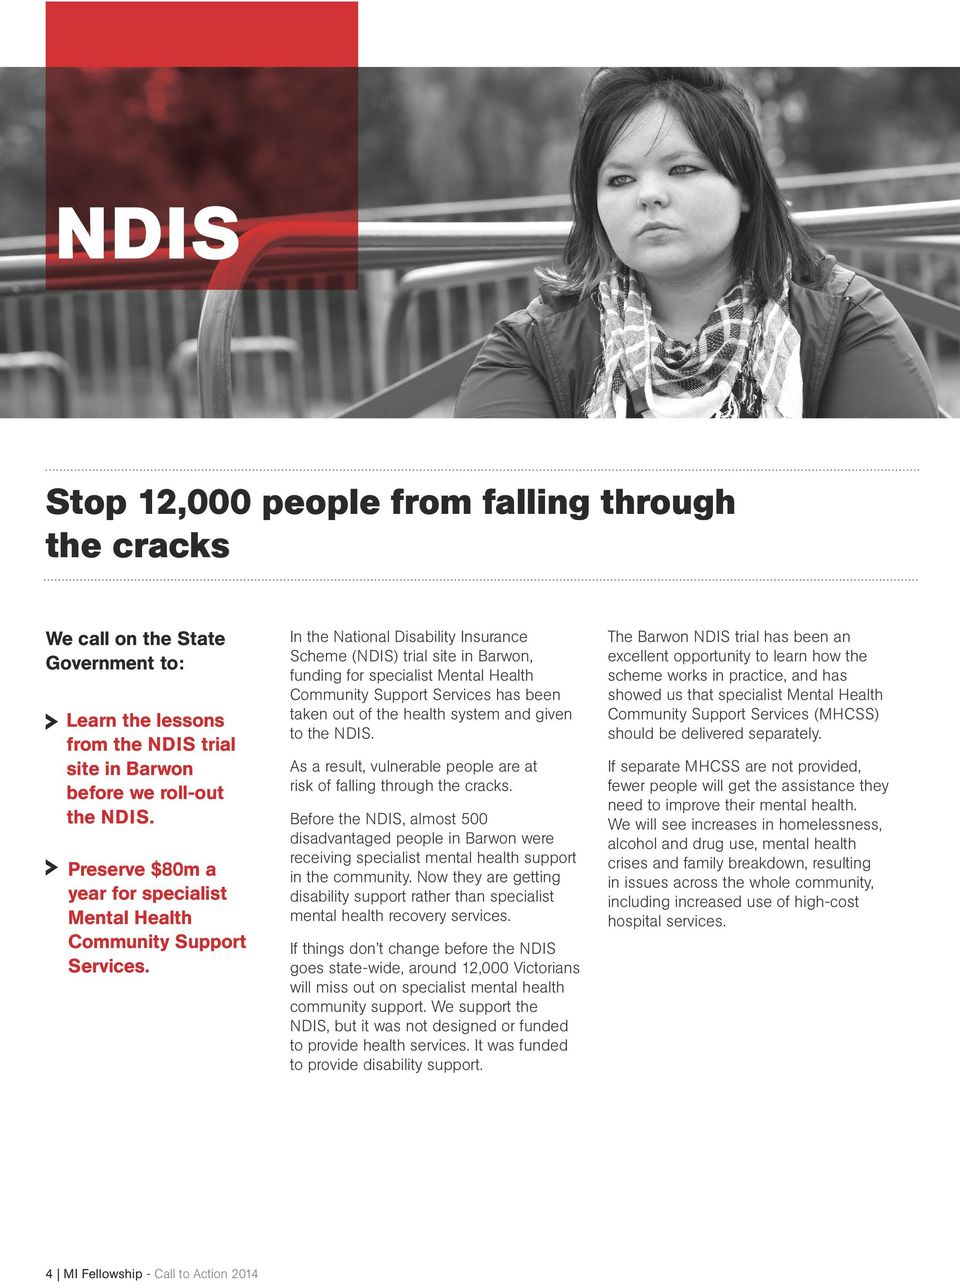 4 MI Fellowship - Call to Action 2014 In the National Disability Insurance Scheme (NDIS) trial site in Barwon, funding for specialist Mental Health Community Support Services has been taken out of